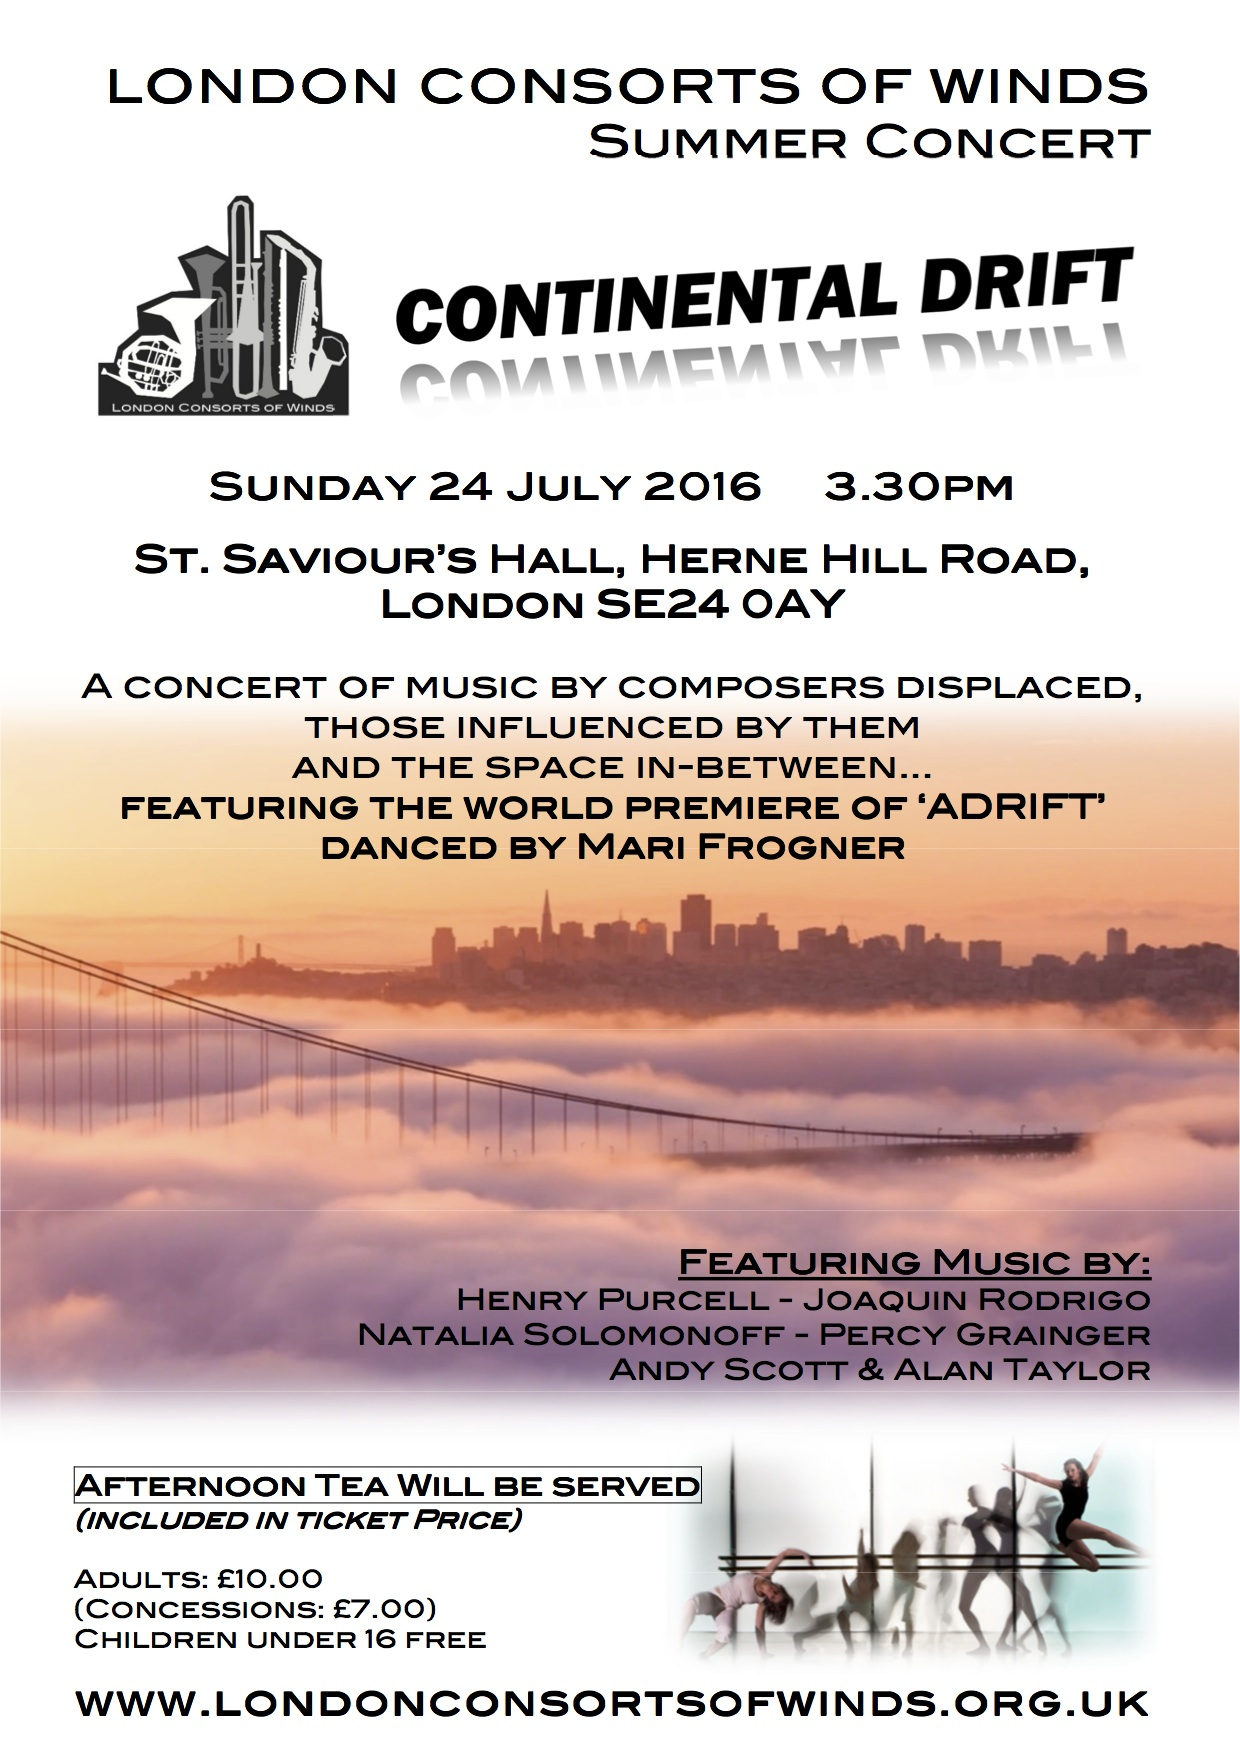 Flyer for the upcoming summer concert - click for PDF version